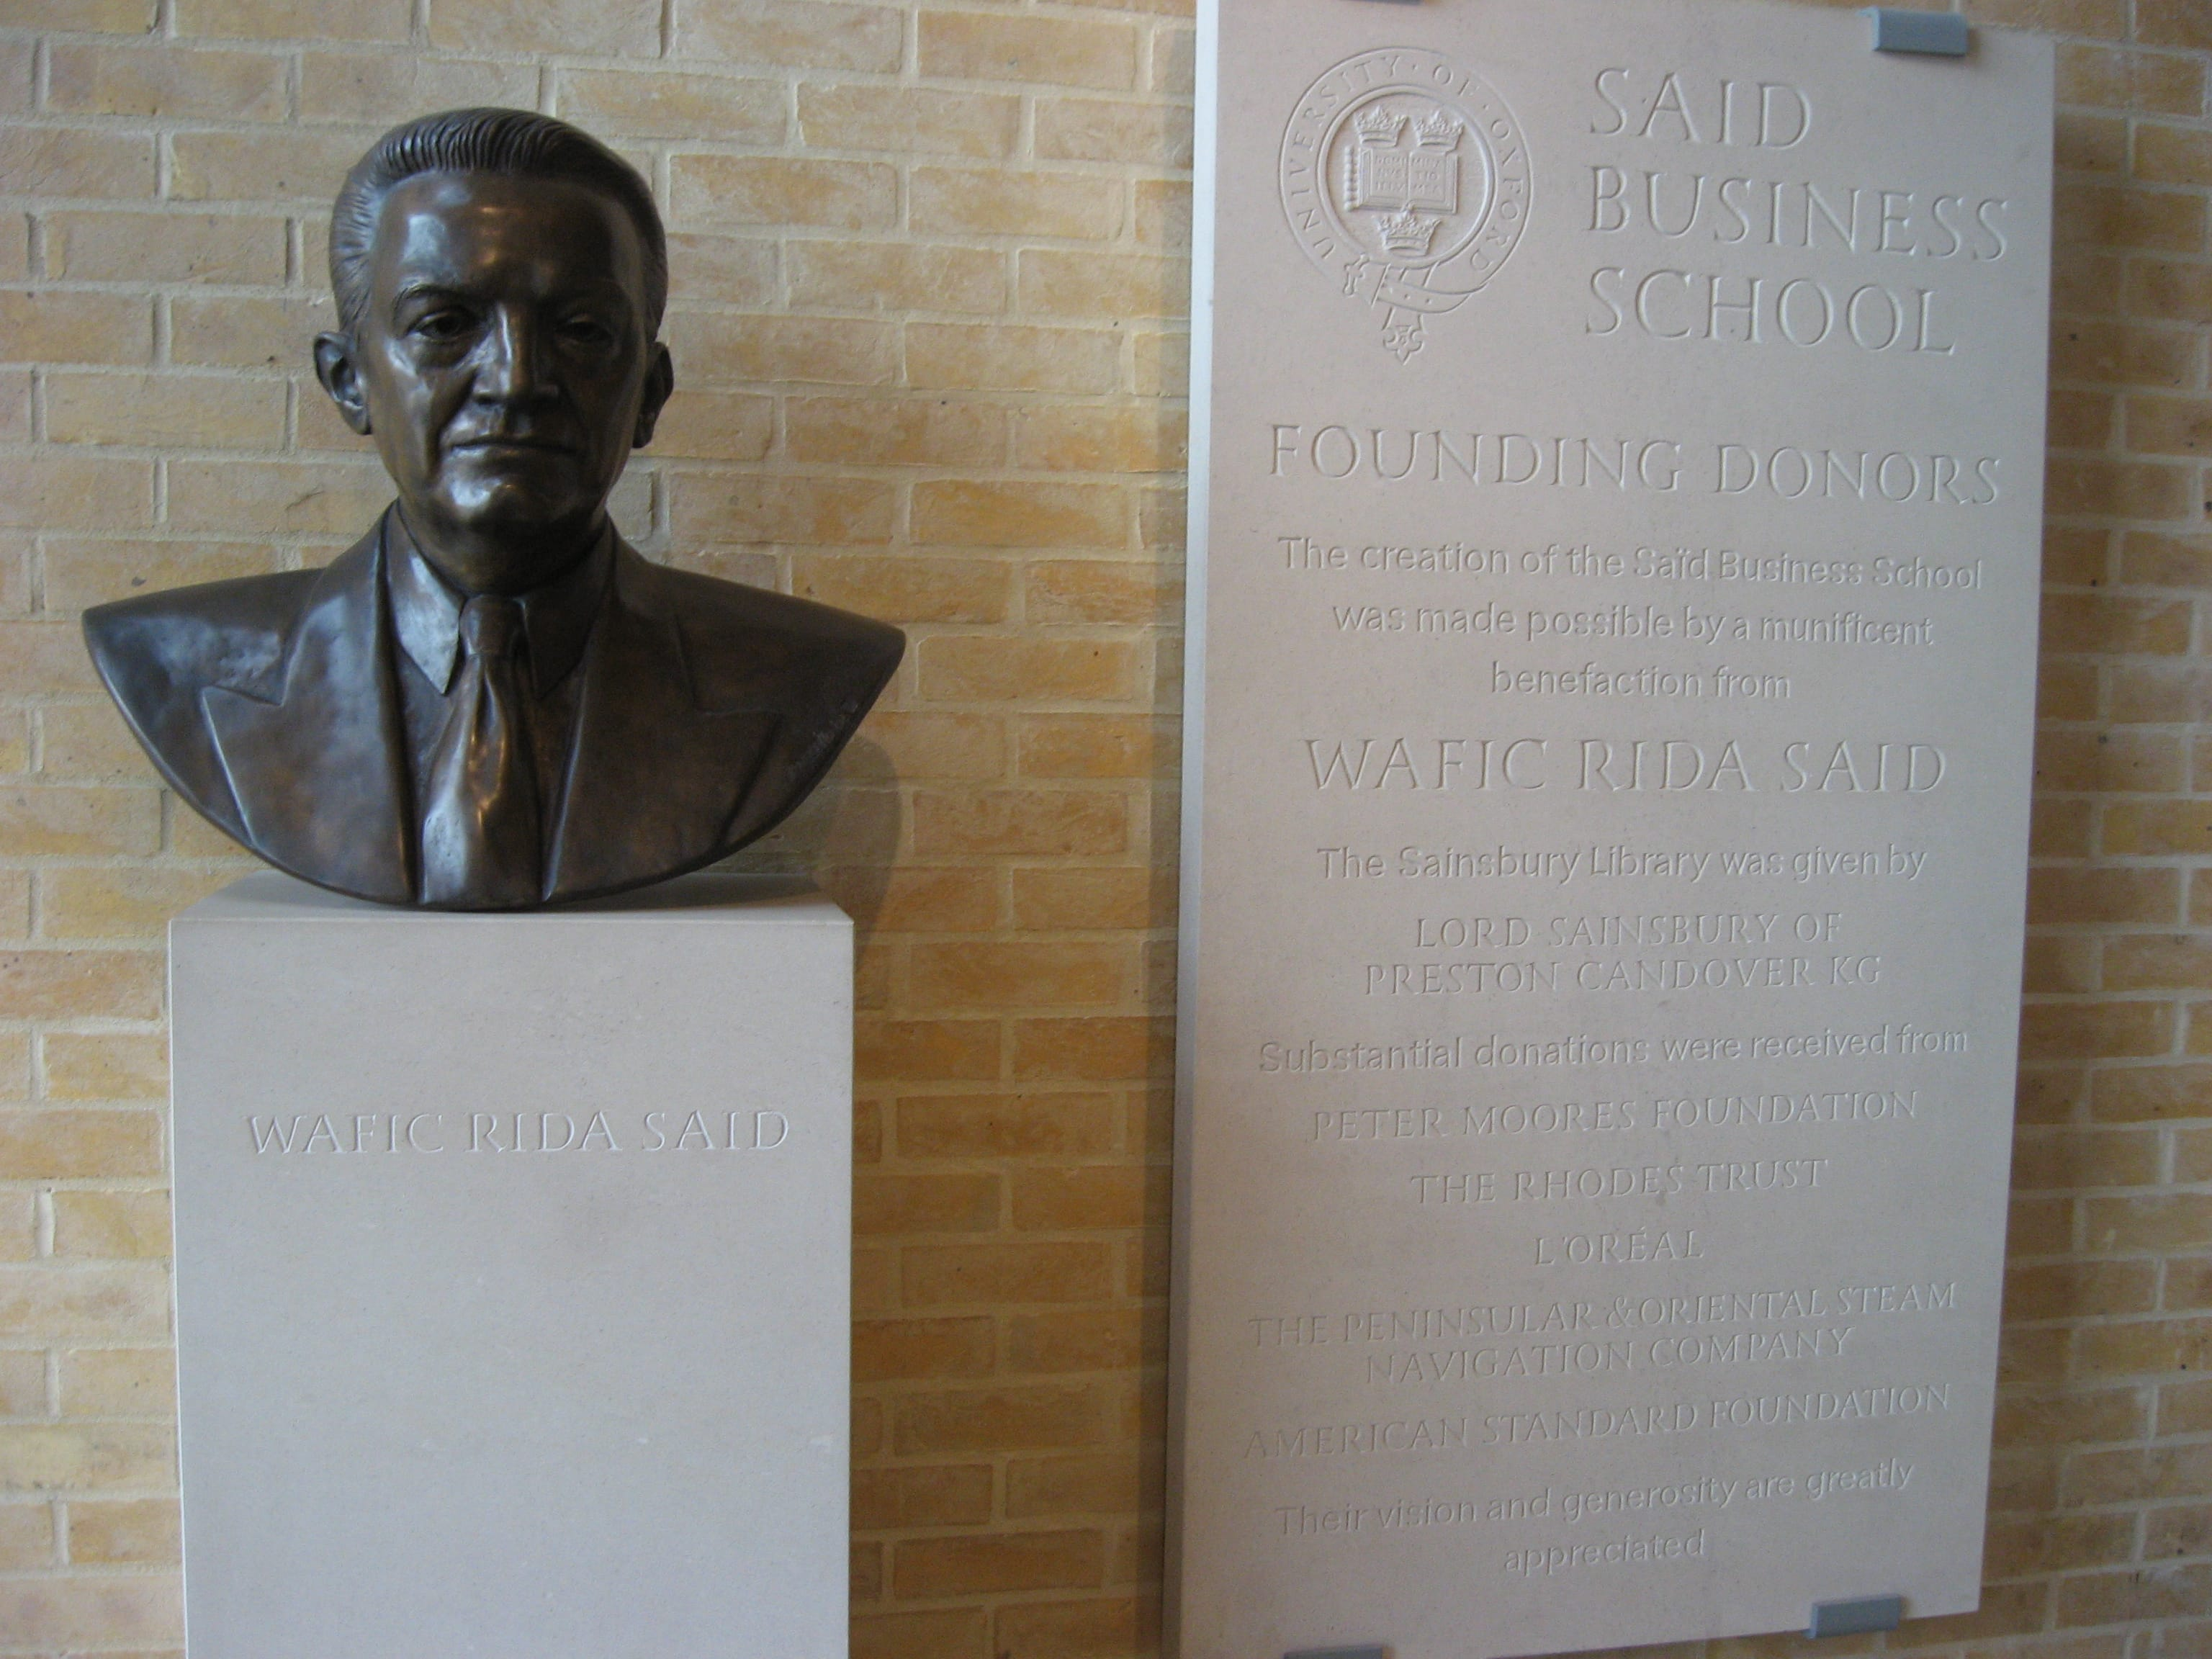 Wafic Saïd bust and plaque